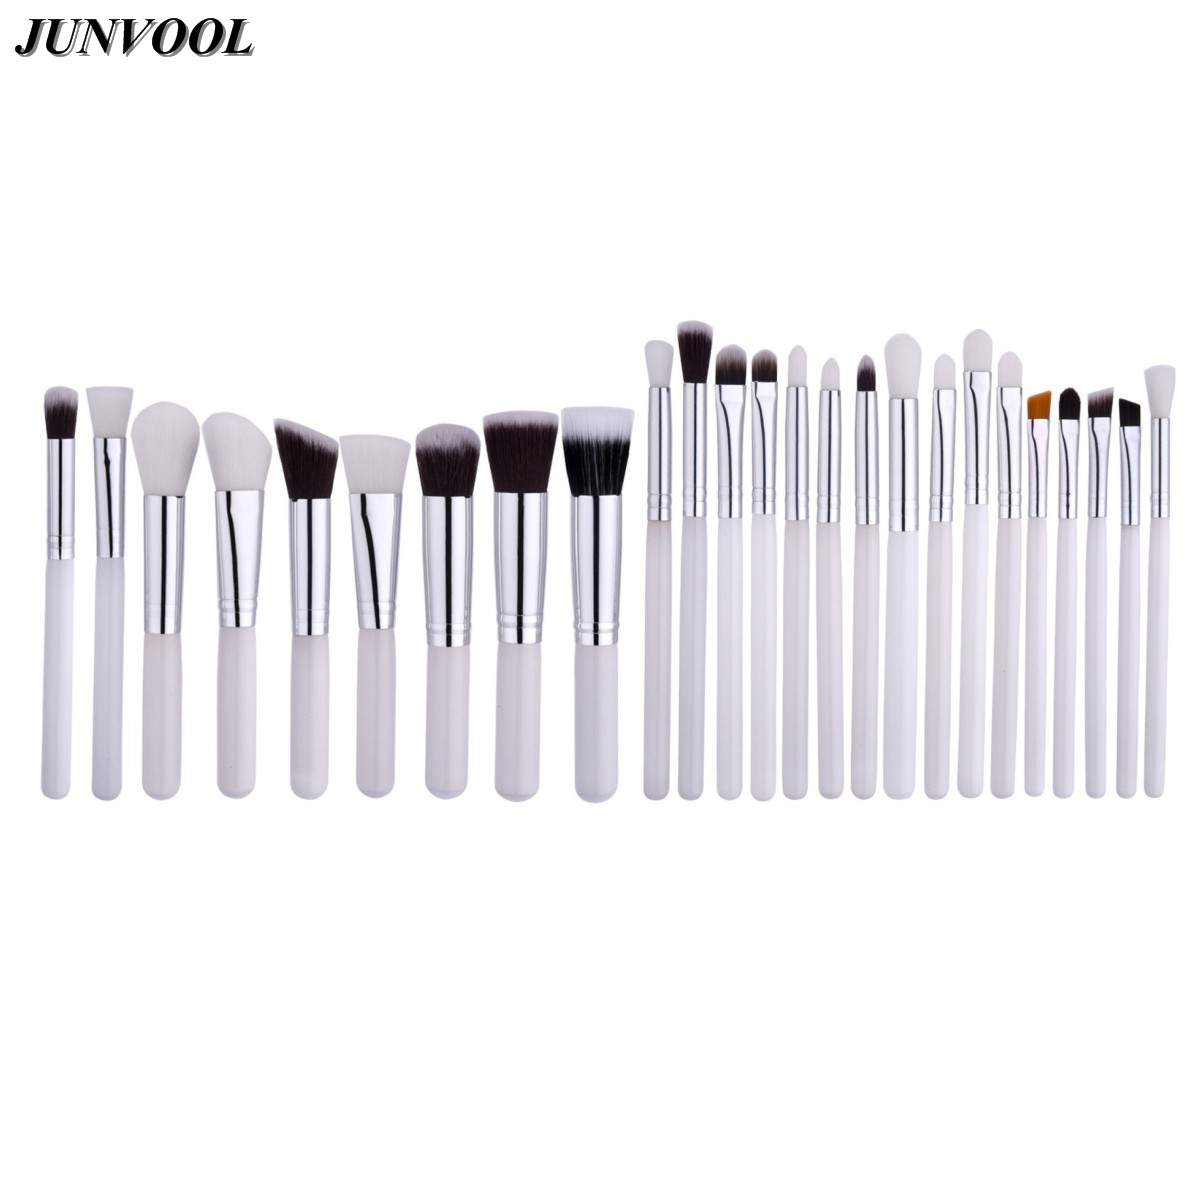 25Pcs Makeup Brushes Set Professional Make Up Tools Kit Powder Foundation Eyeshadow Eyeliner Cosmetic Beauty Blushes White&Black new 32 pcs makeup brush set powder foundation eyeshadow eyeliner lip cosmetic brushes kit beauty tools fm88